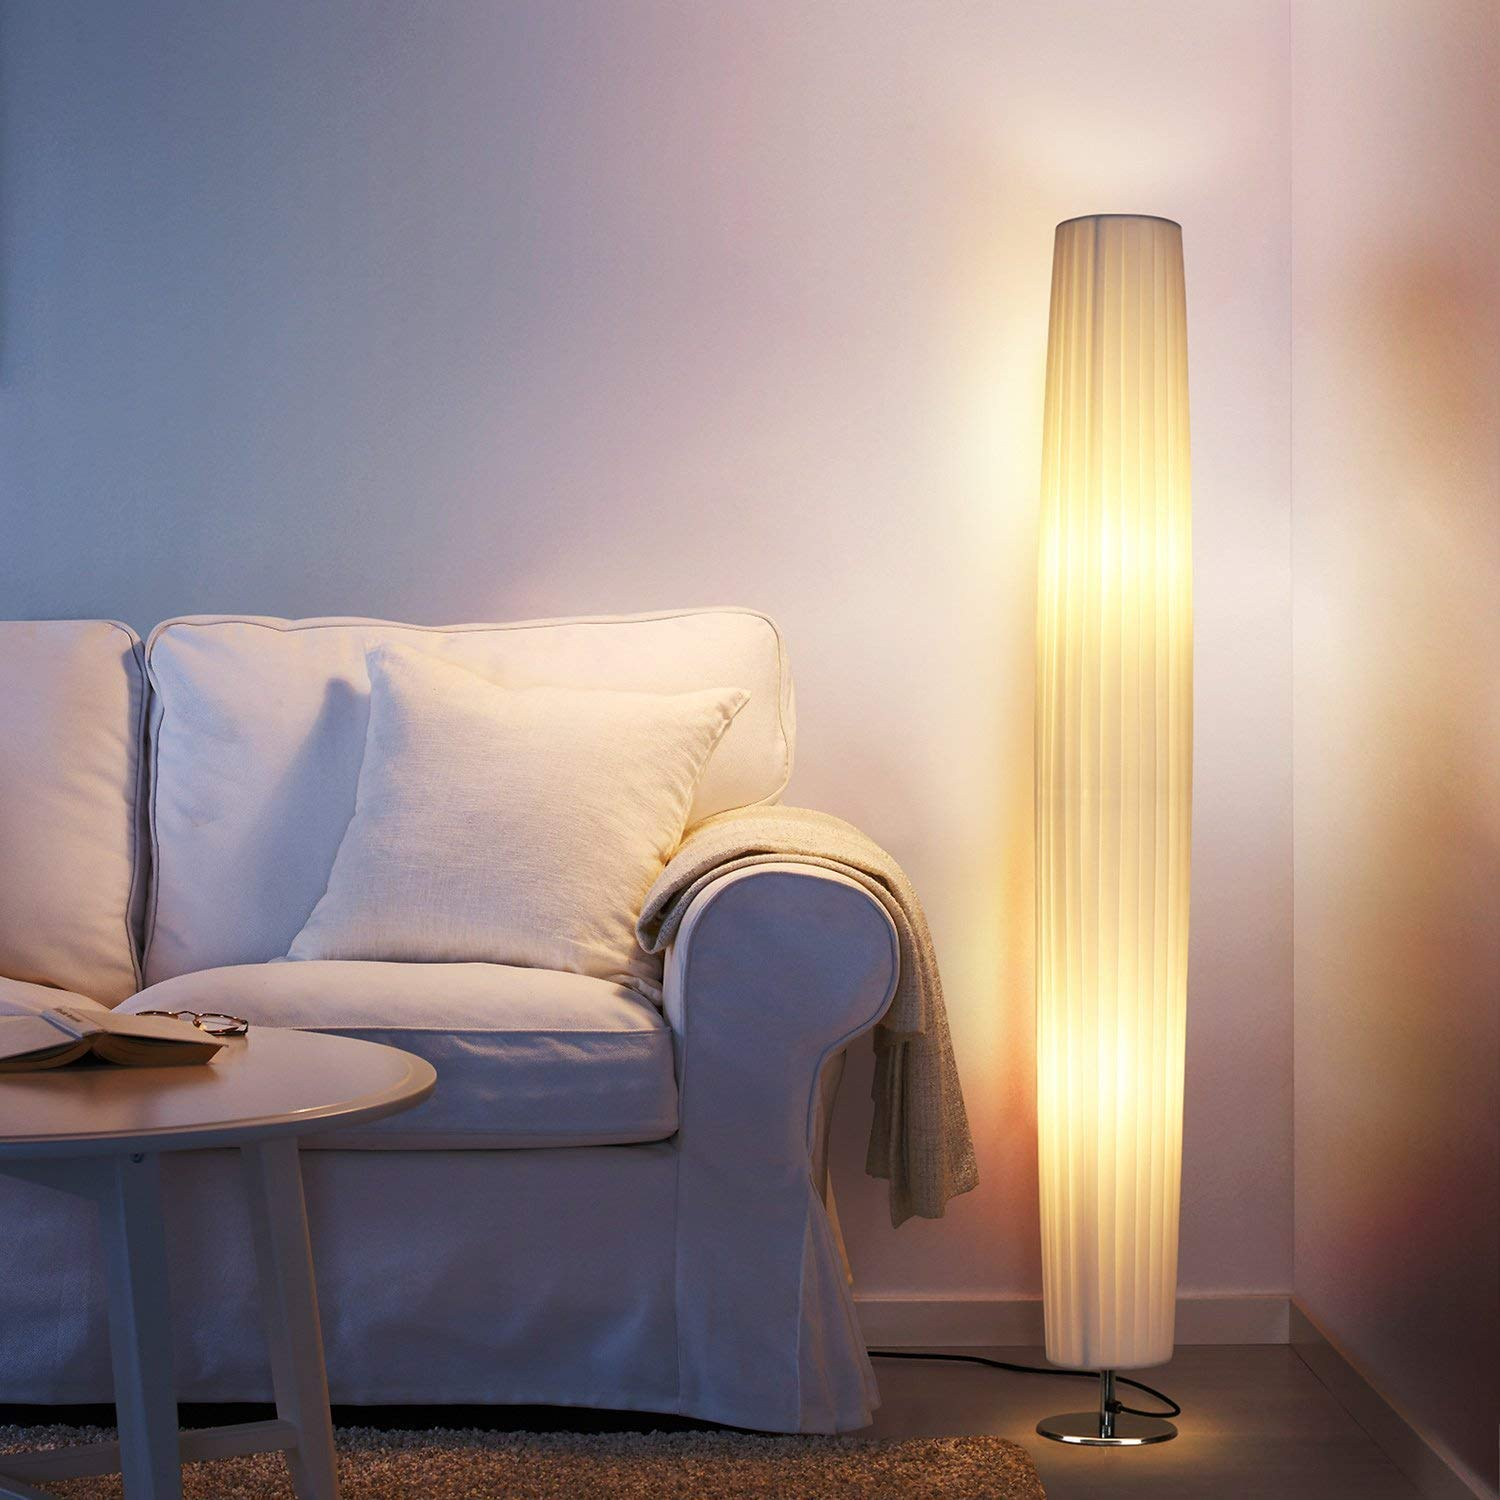 Miraculous Cheap Tall Floor Lamps Find Tall Floor Lamps Deals On Line Home Interior And Landscaping Pimpapssignezvosmurscom